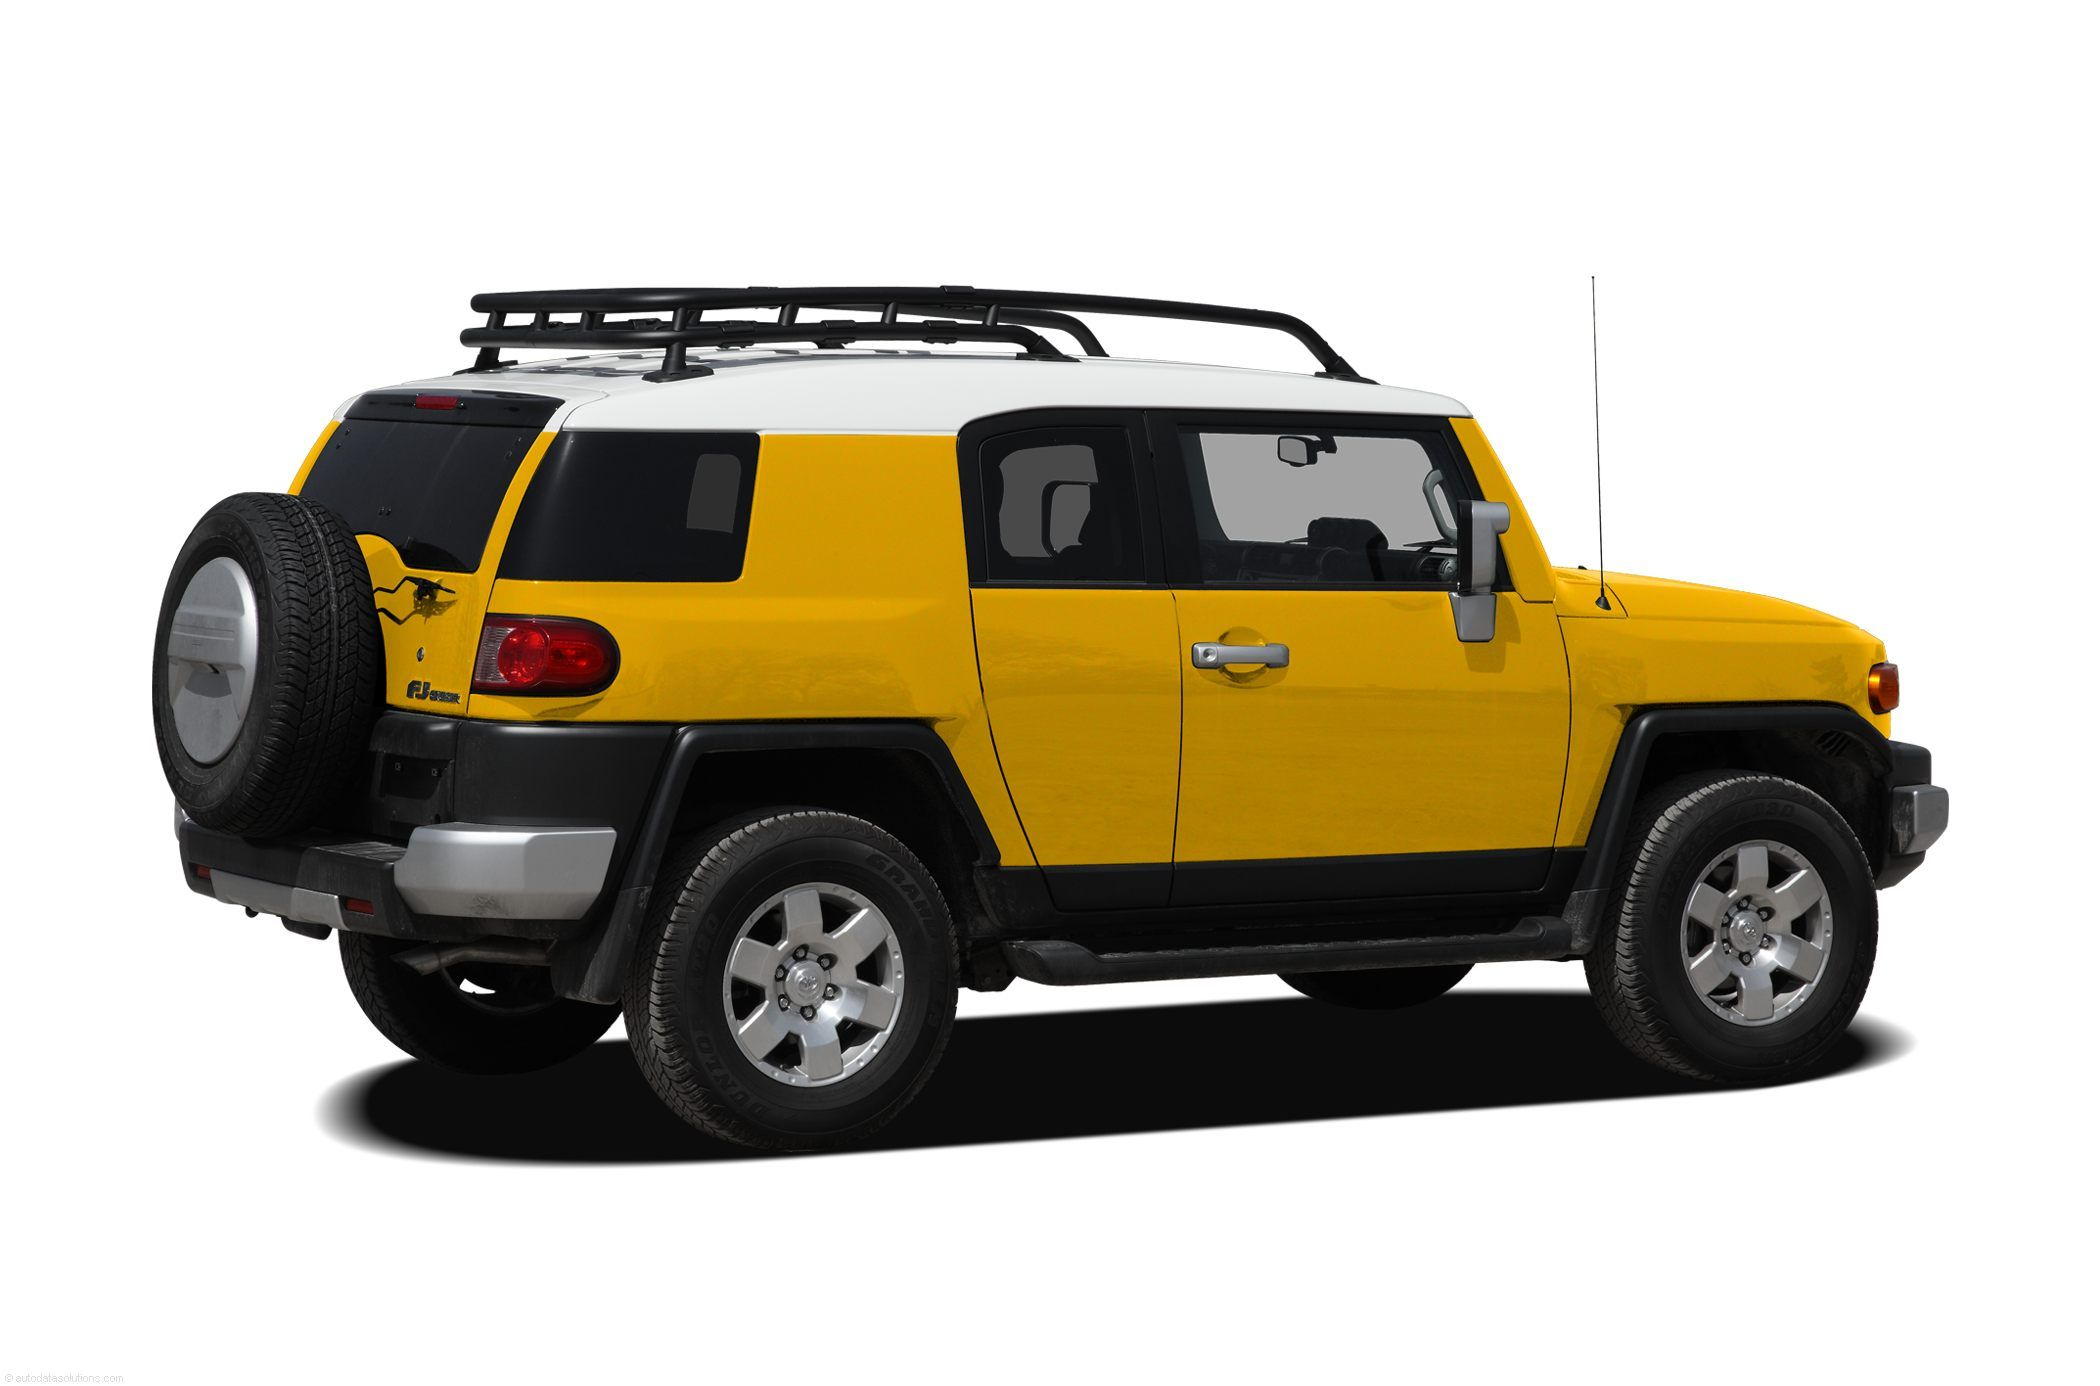 Sleek and sporty, the 2010 Toyota FJ Cruiser five